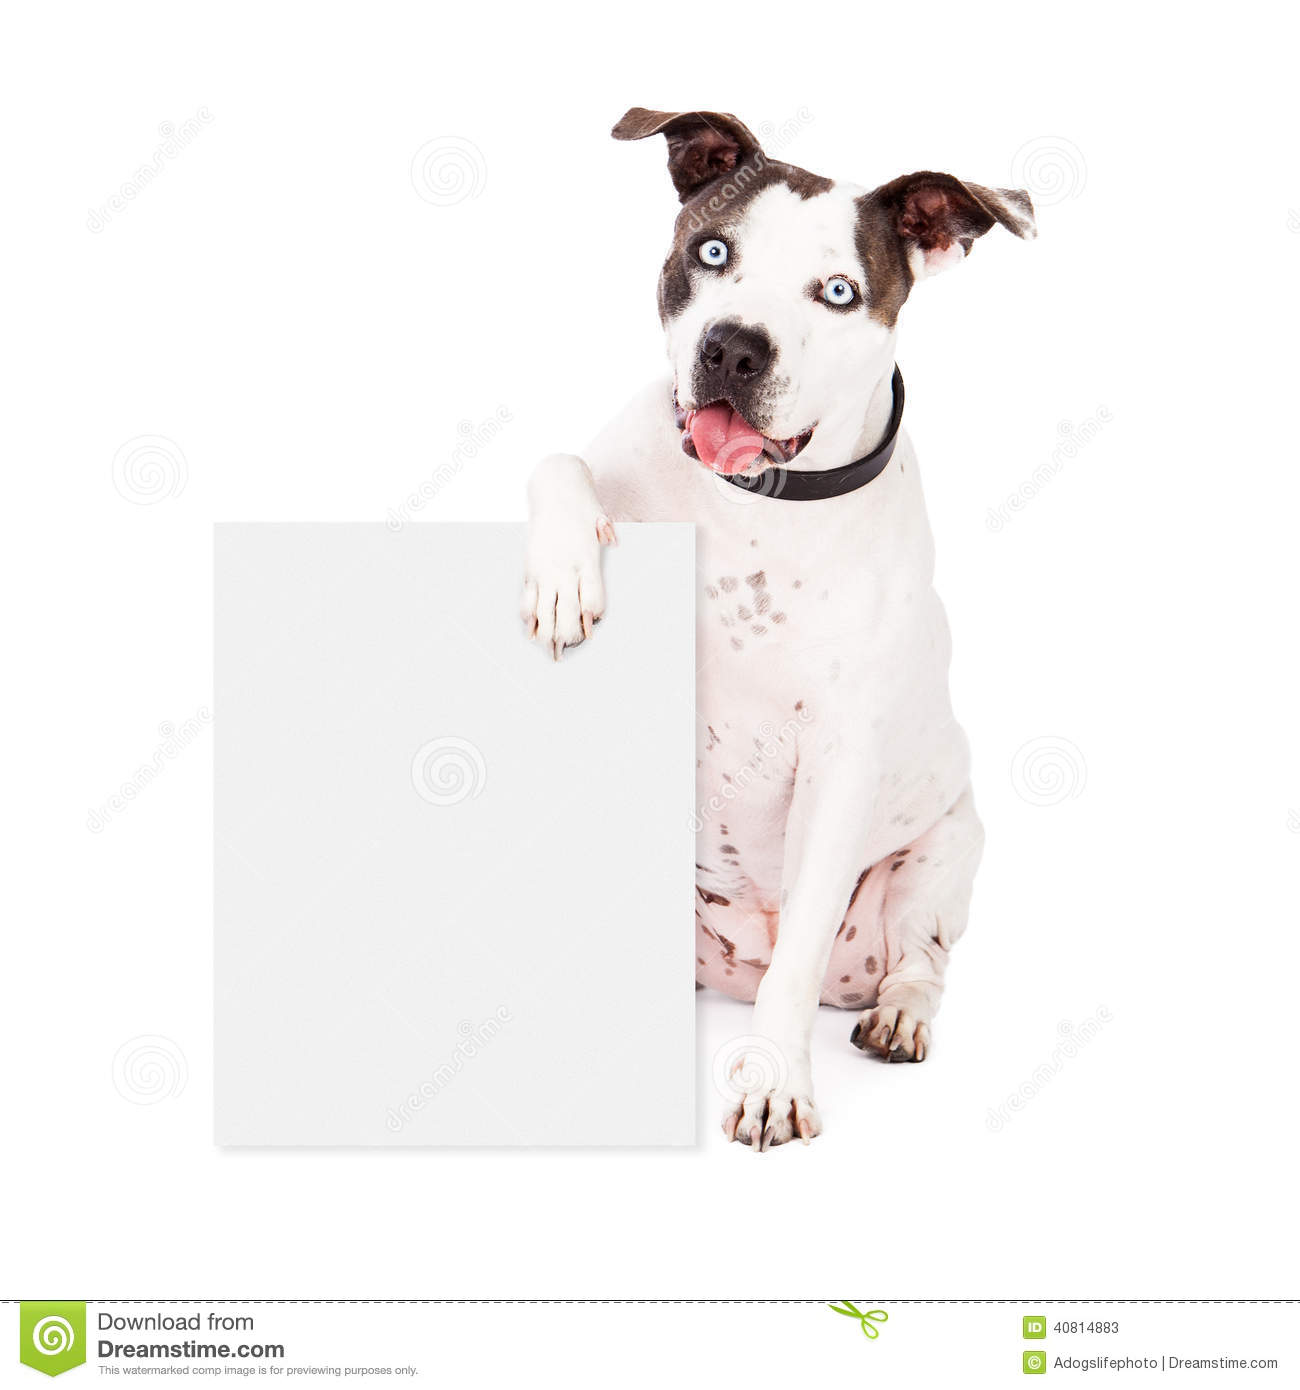 Pit Bull Holding Blank Sign Stock Photo - Image: 40814883